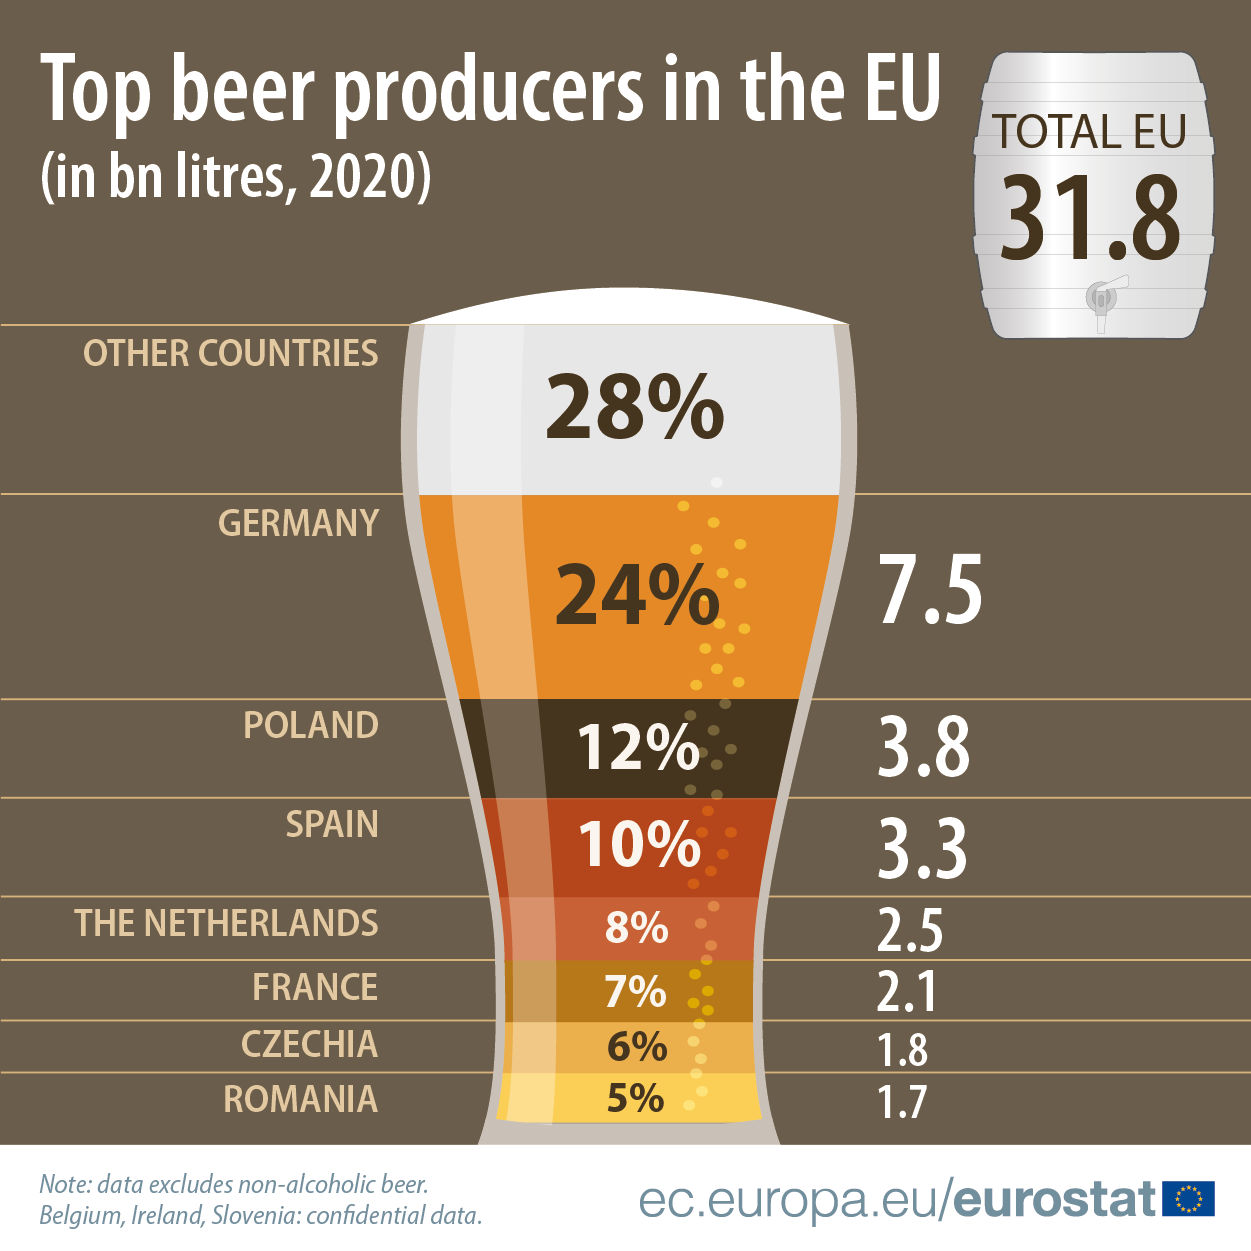 Infographic: Top beer producers in the EU in billion litres, 2020